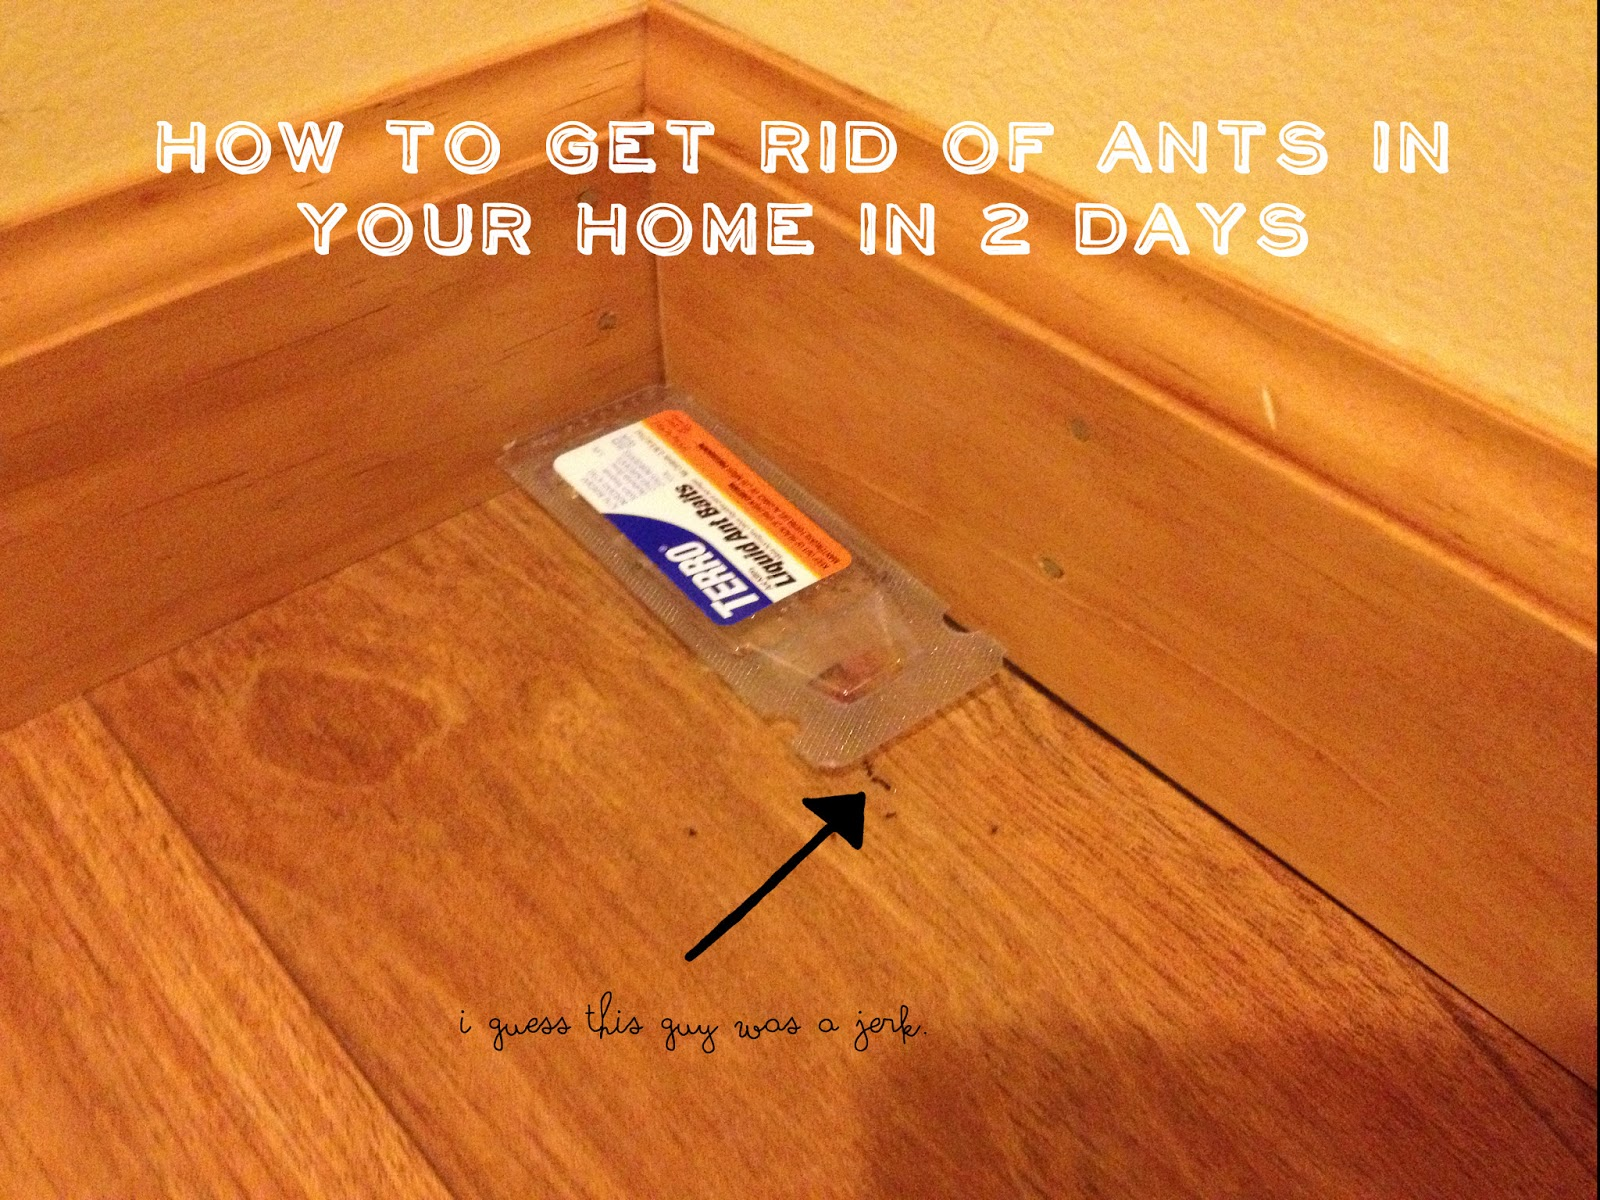 I have ants in my house - You Ll Possibly Have Reinfestations Throughout The Summer But I Usually Only Have To Do This Once Each Spring